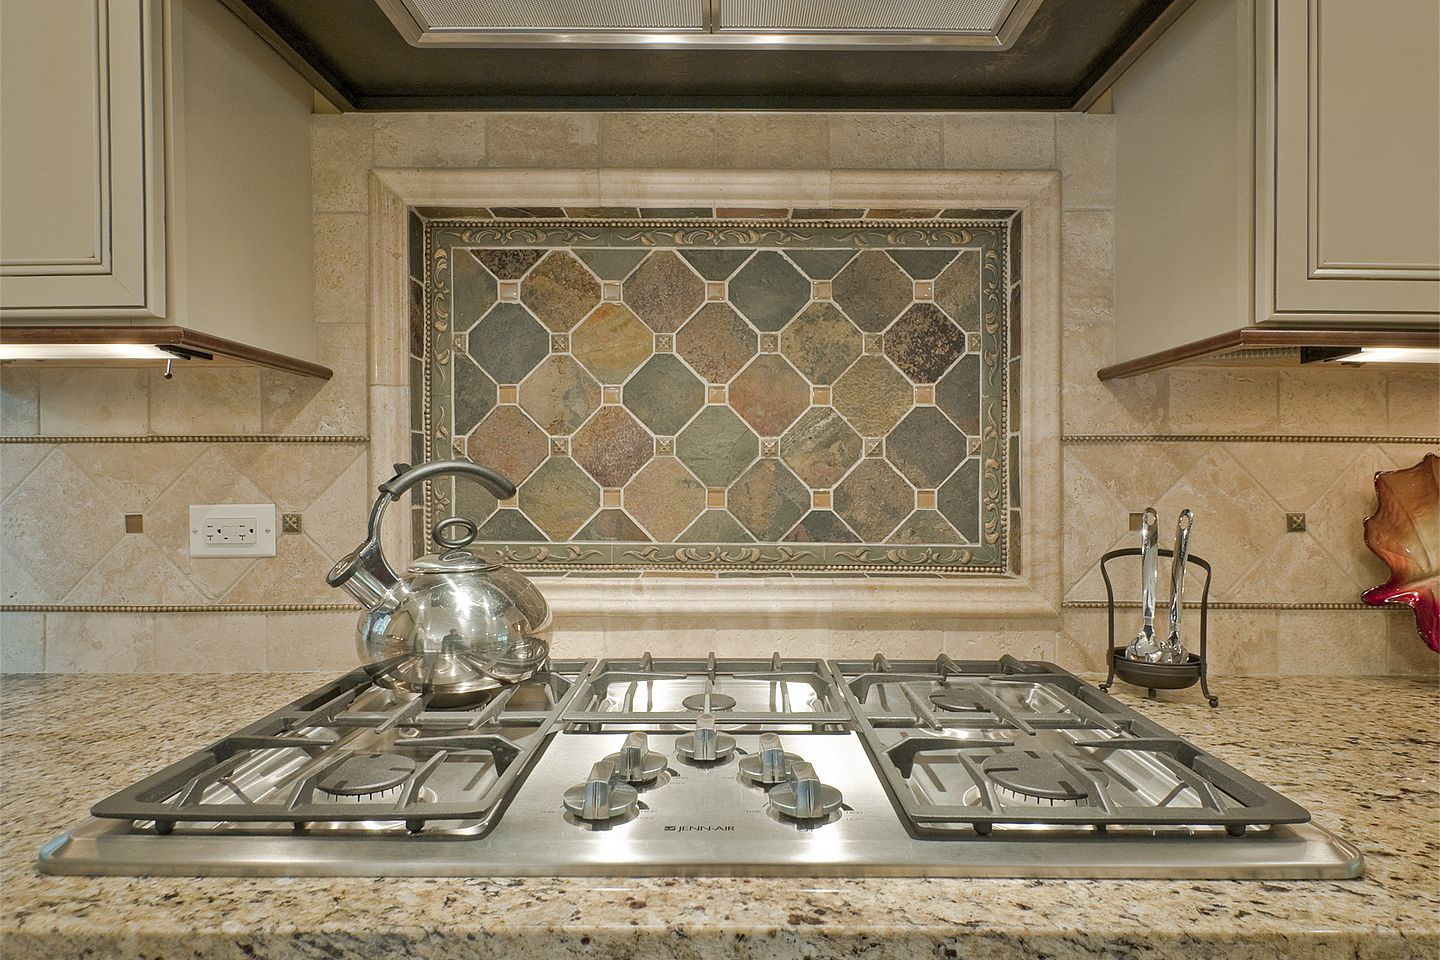 Tuscan kitchen backsplash ideas backsplash ideas for a - Decorative tile for backsplash in kitchens ...